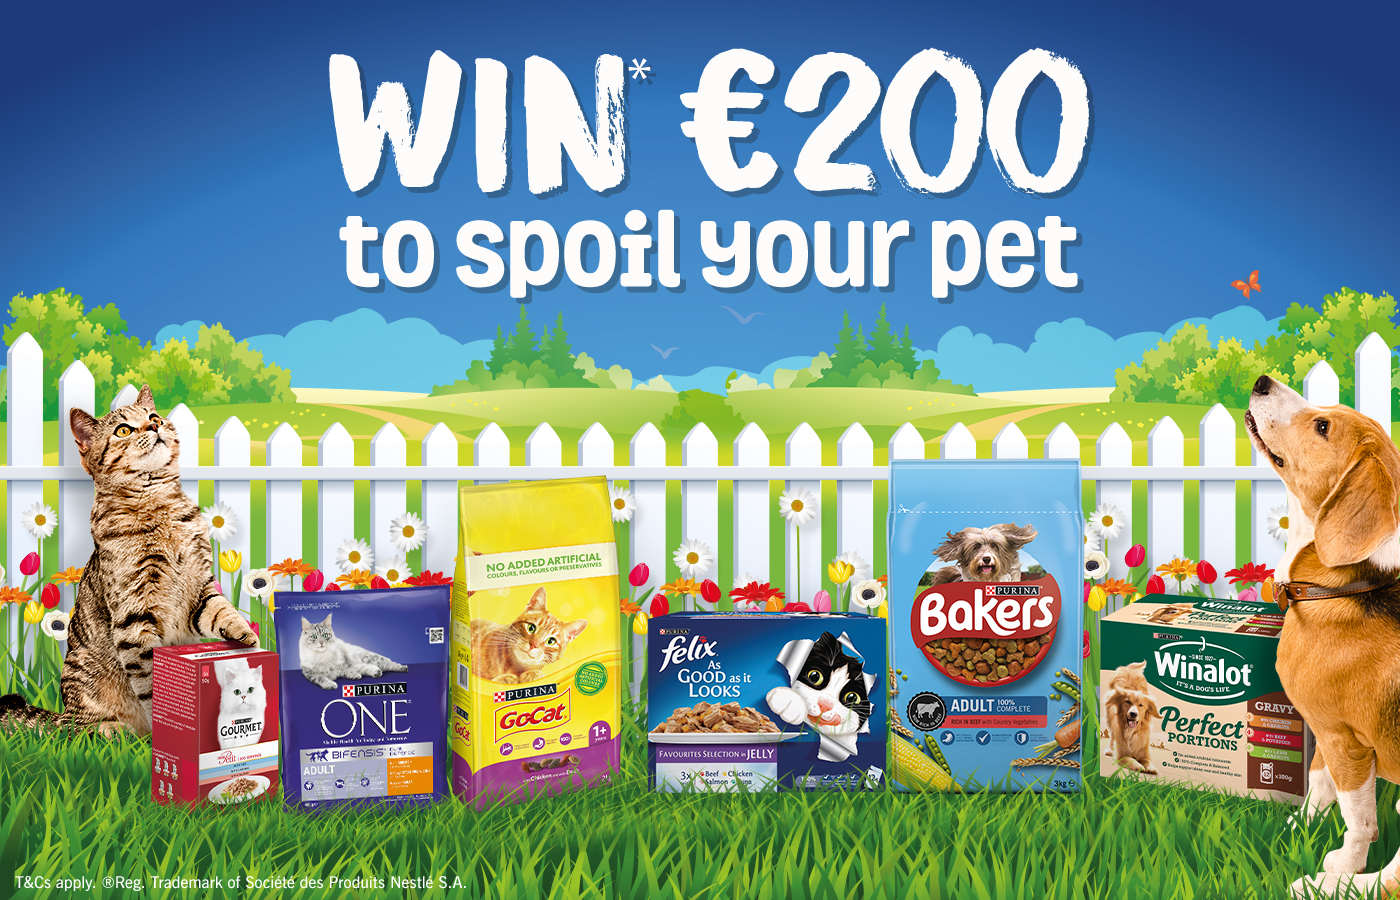 Win €200 to spoil your pet at SuperValu